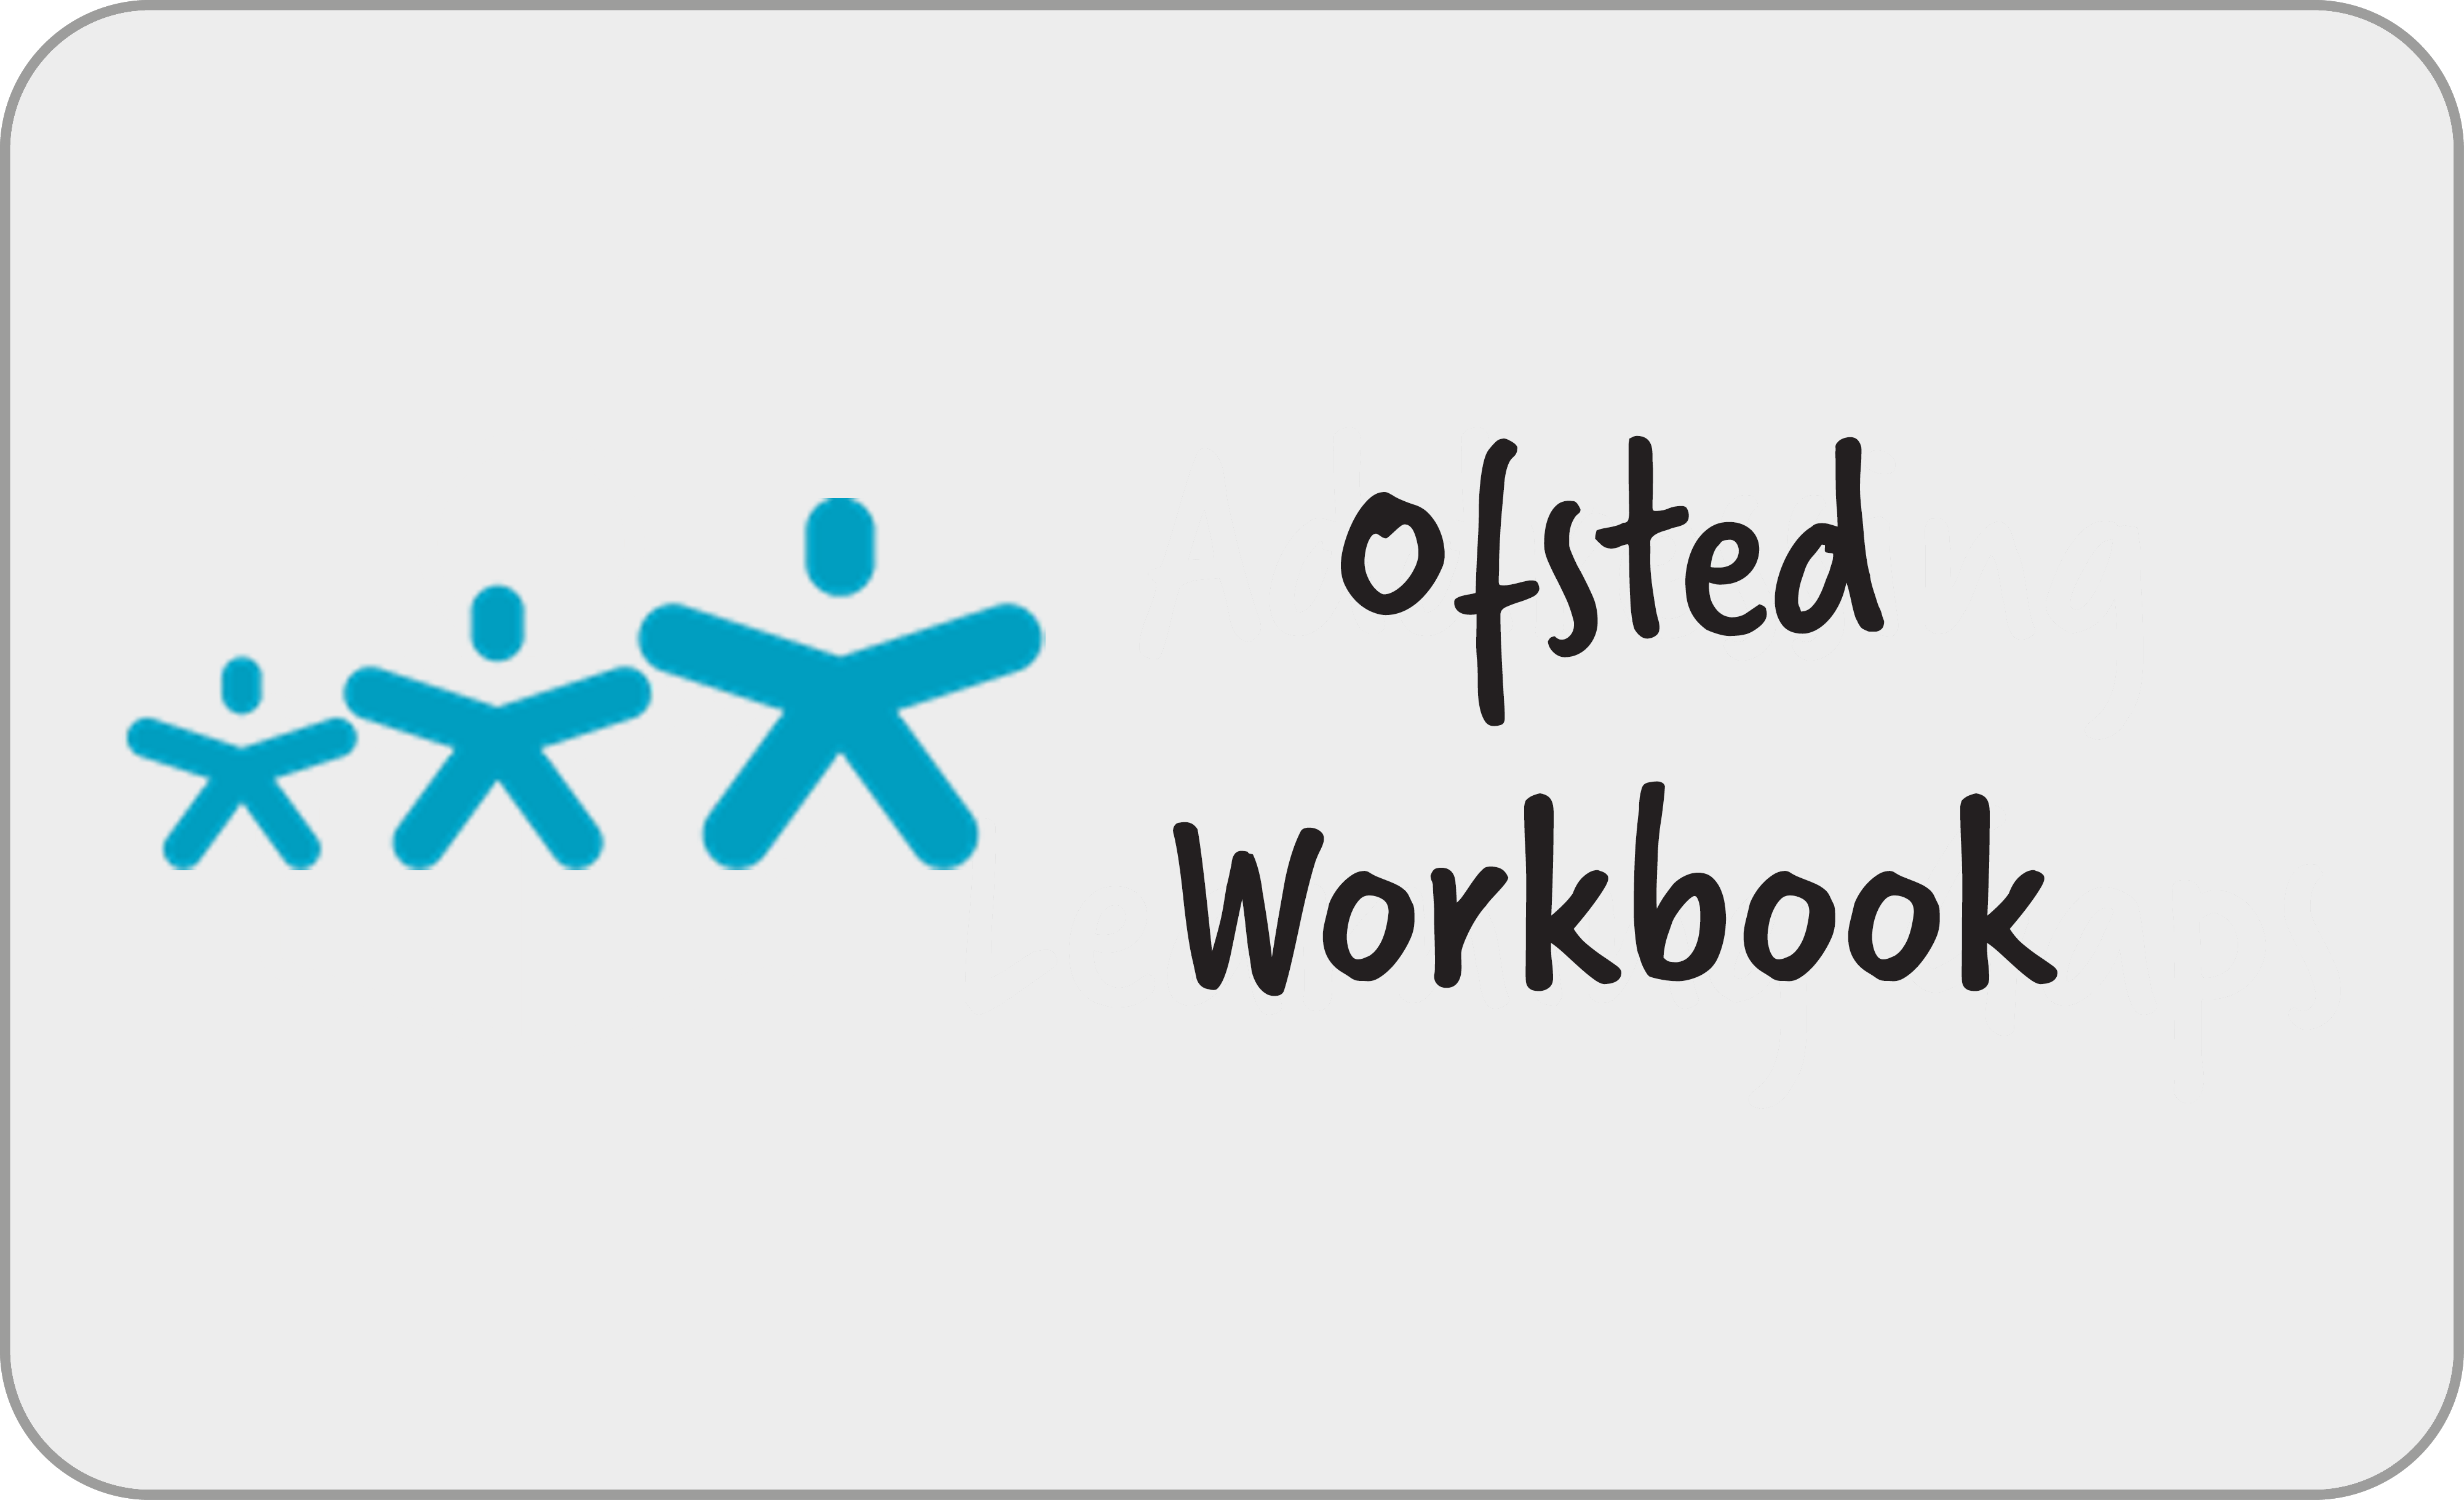 Ofsted workbook